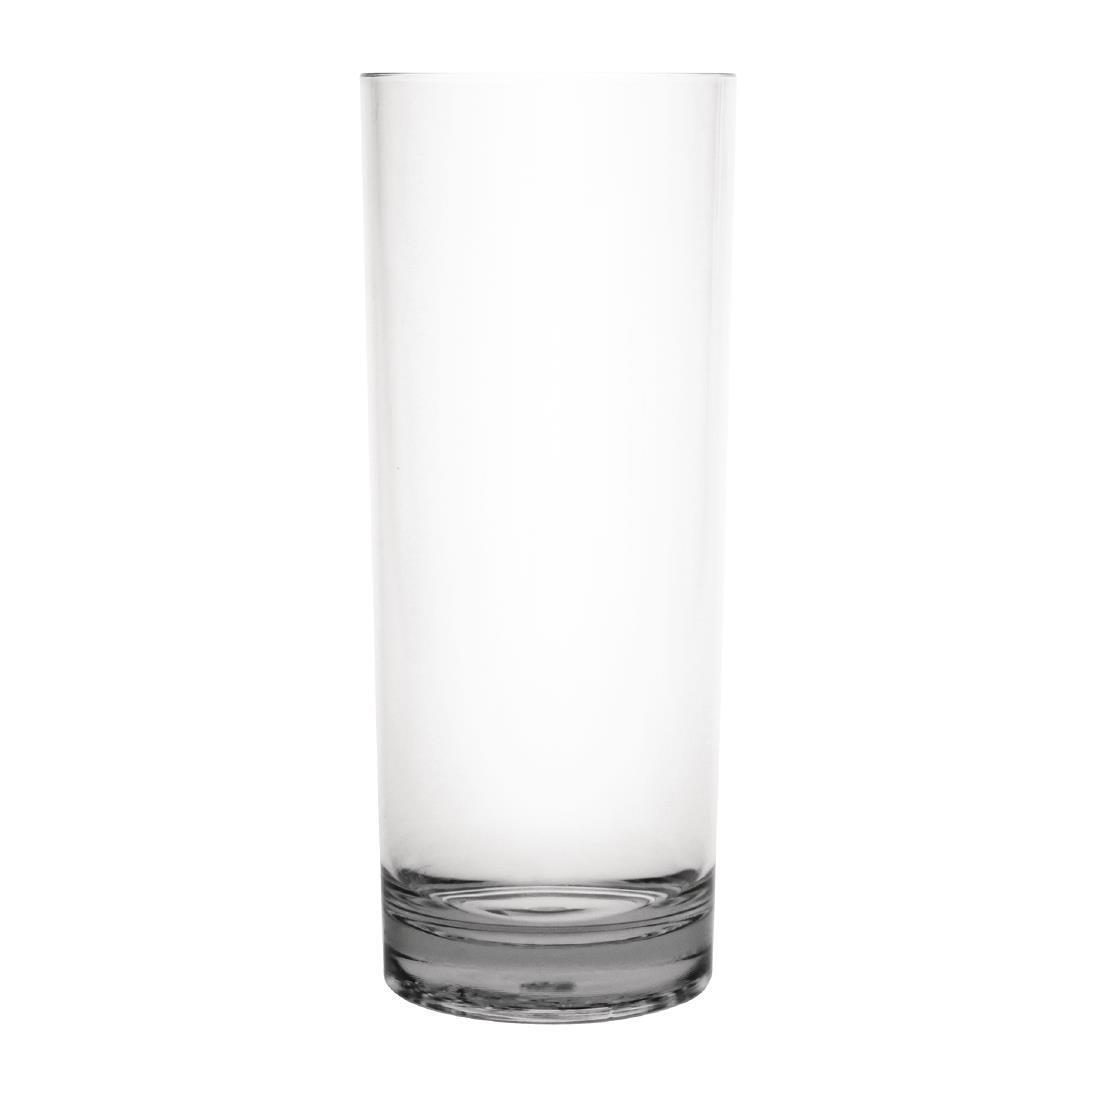 Kristallon Polycarbonate Hi Ball Glasses Clear 360ml - Case 6 - DC924